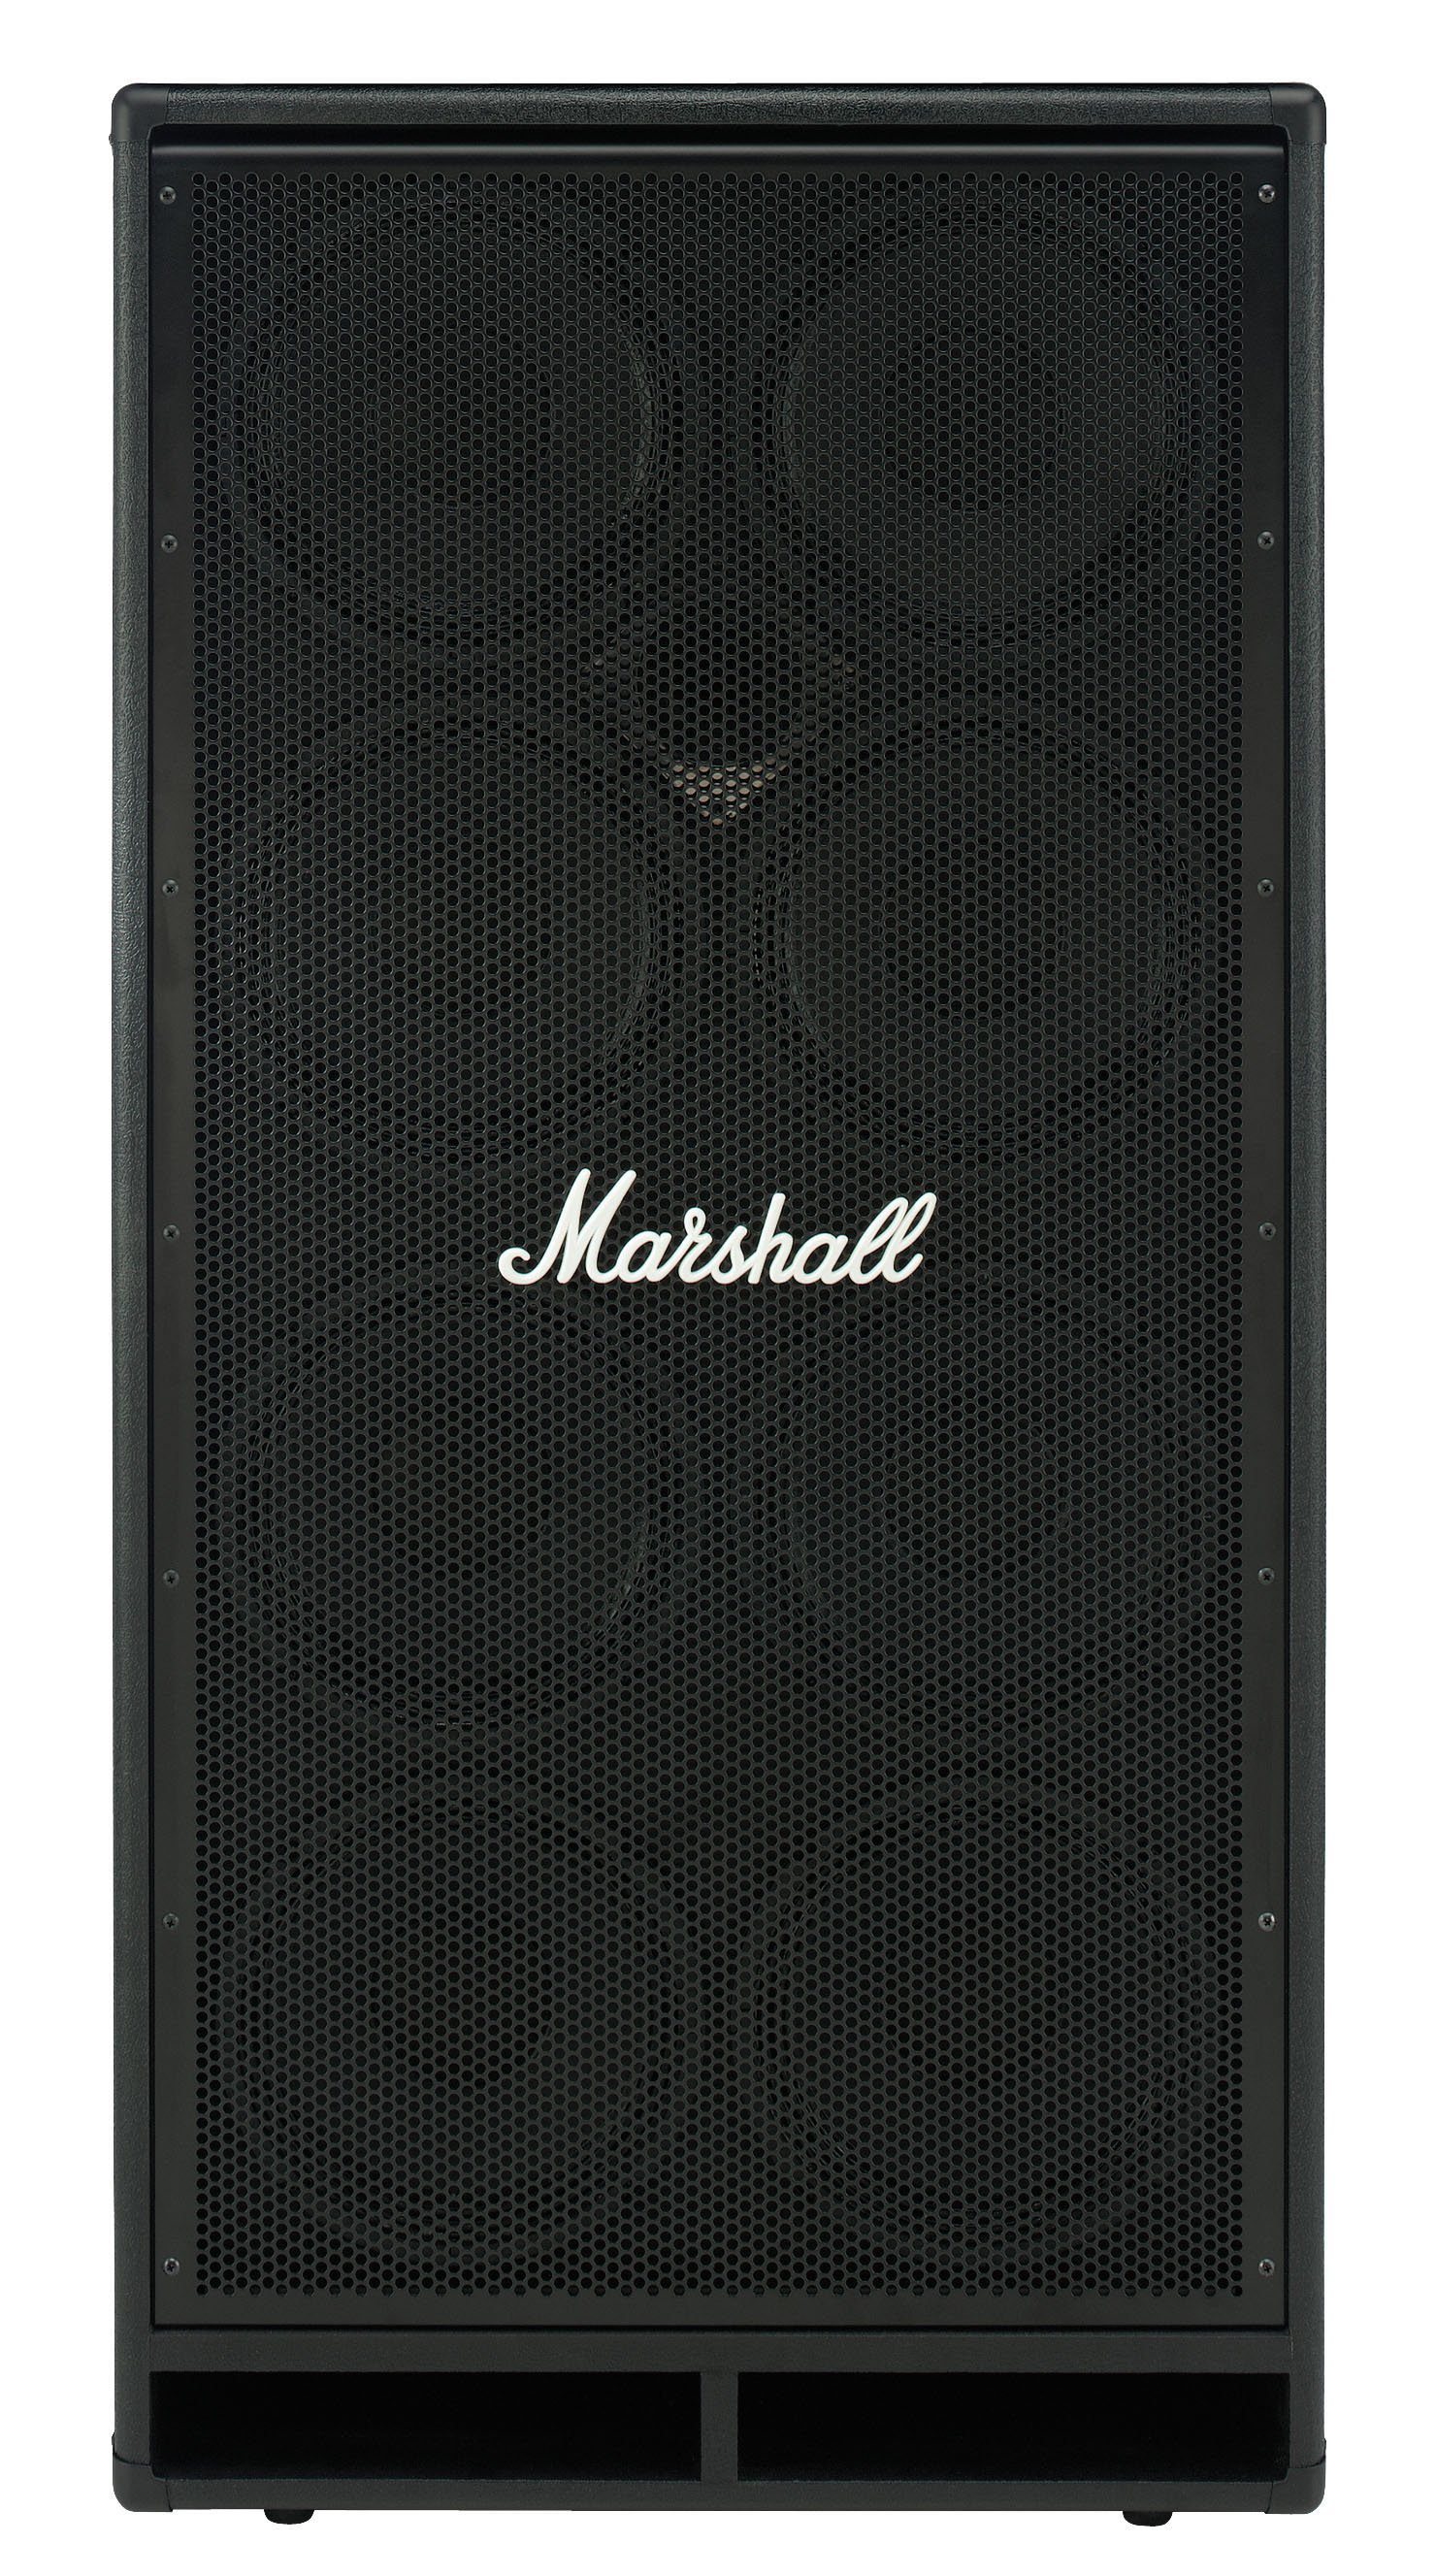 marshall m mbc810 e 1200w 8 x 10 bass guitar speaker cabinet mmbc810e mar12 m mbc810 e. Black Bedroom Furniture Sets. Home Design Ideas